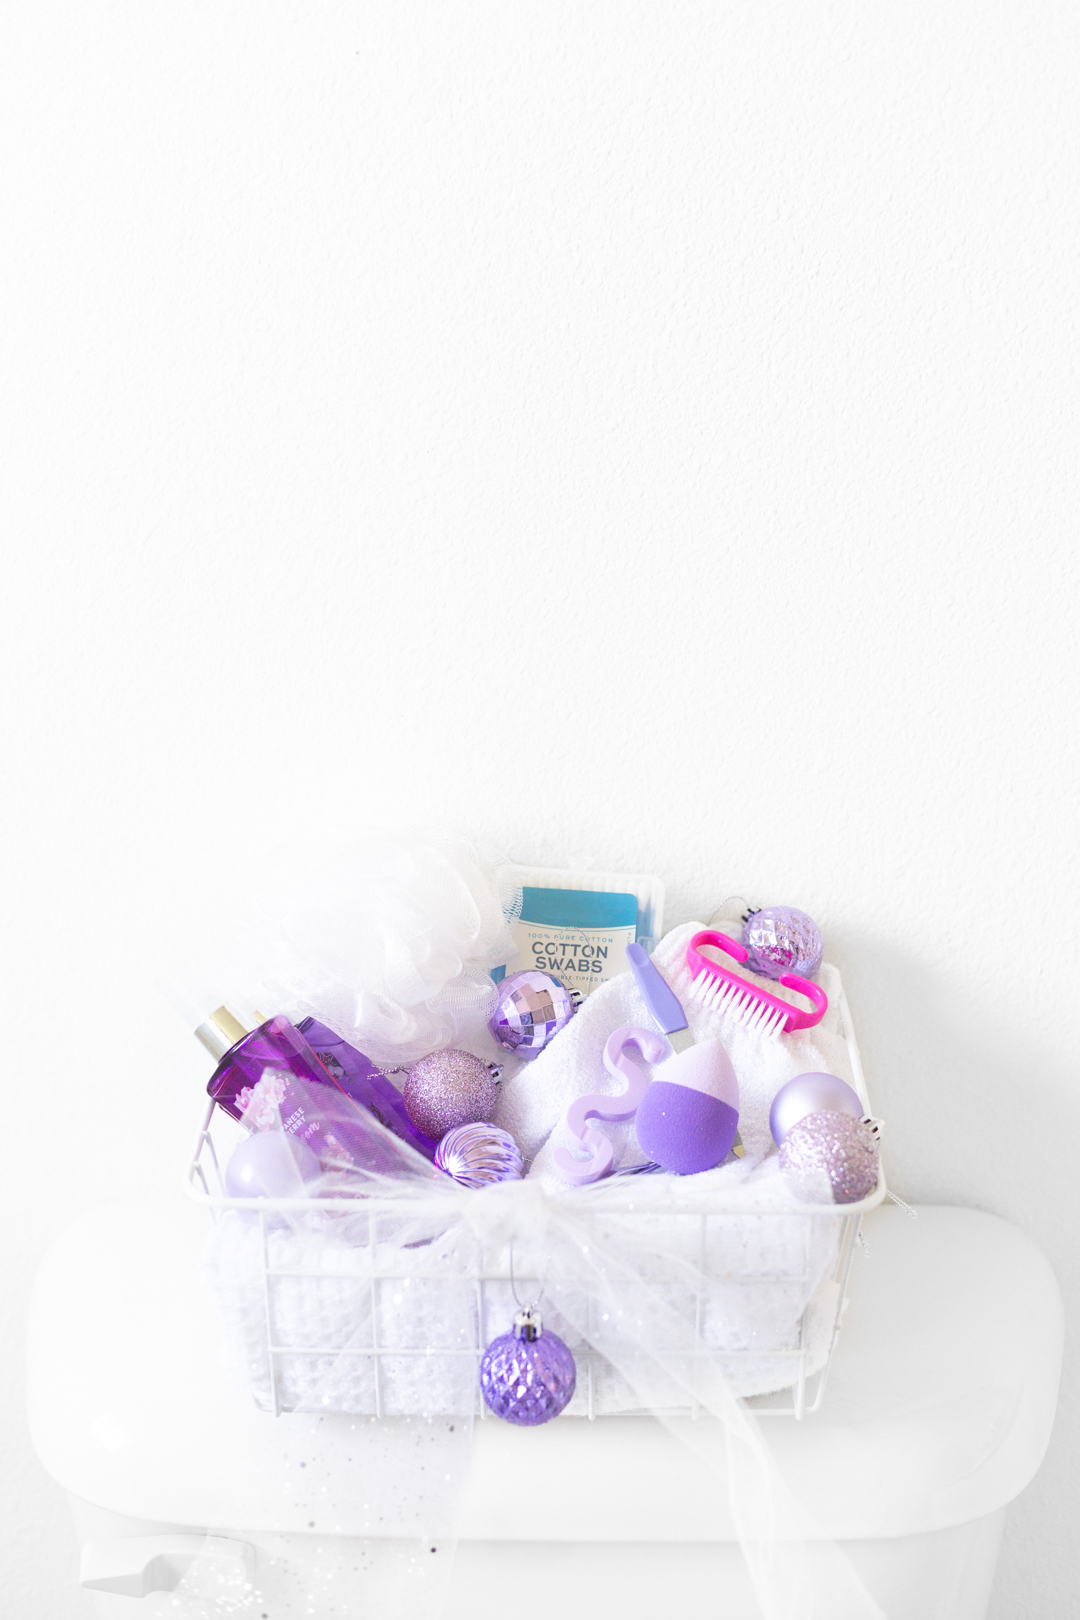 bathroom toiletry basket for guests over the holidays